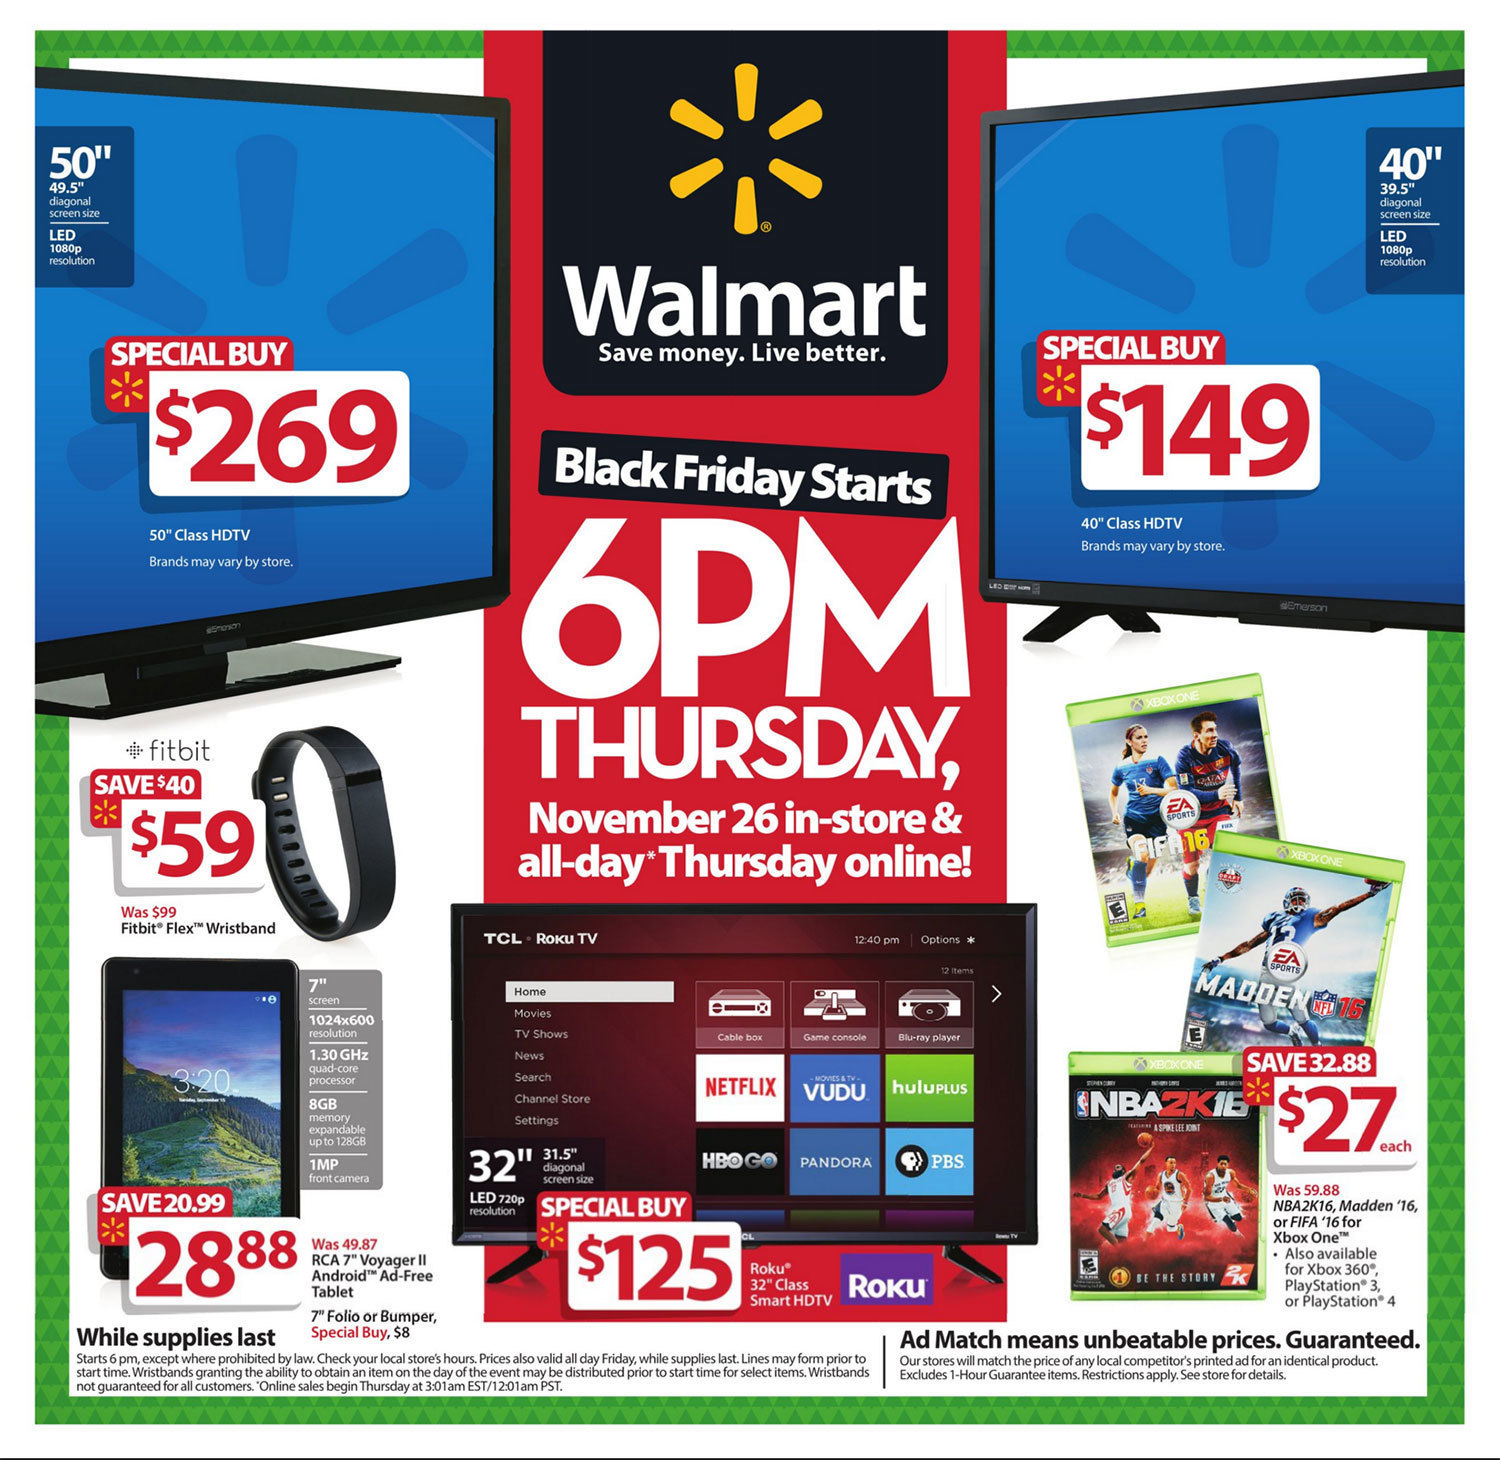 Walmart Black Friday 2015 Ad Page 1